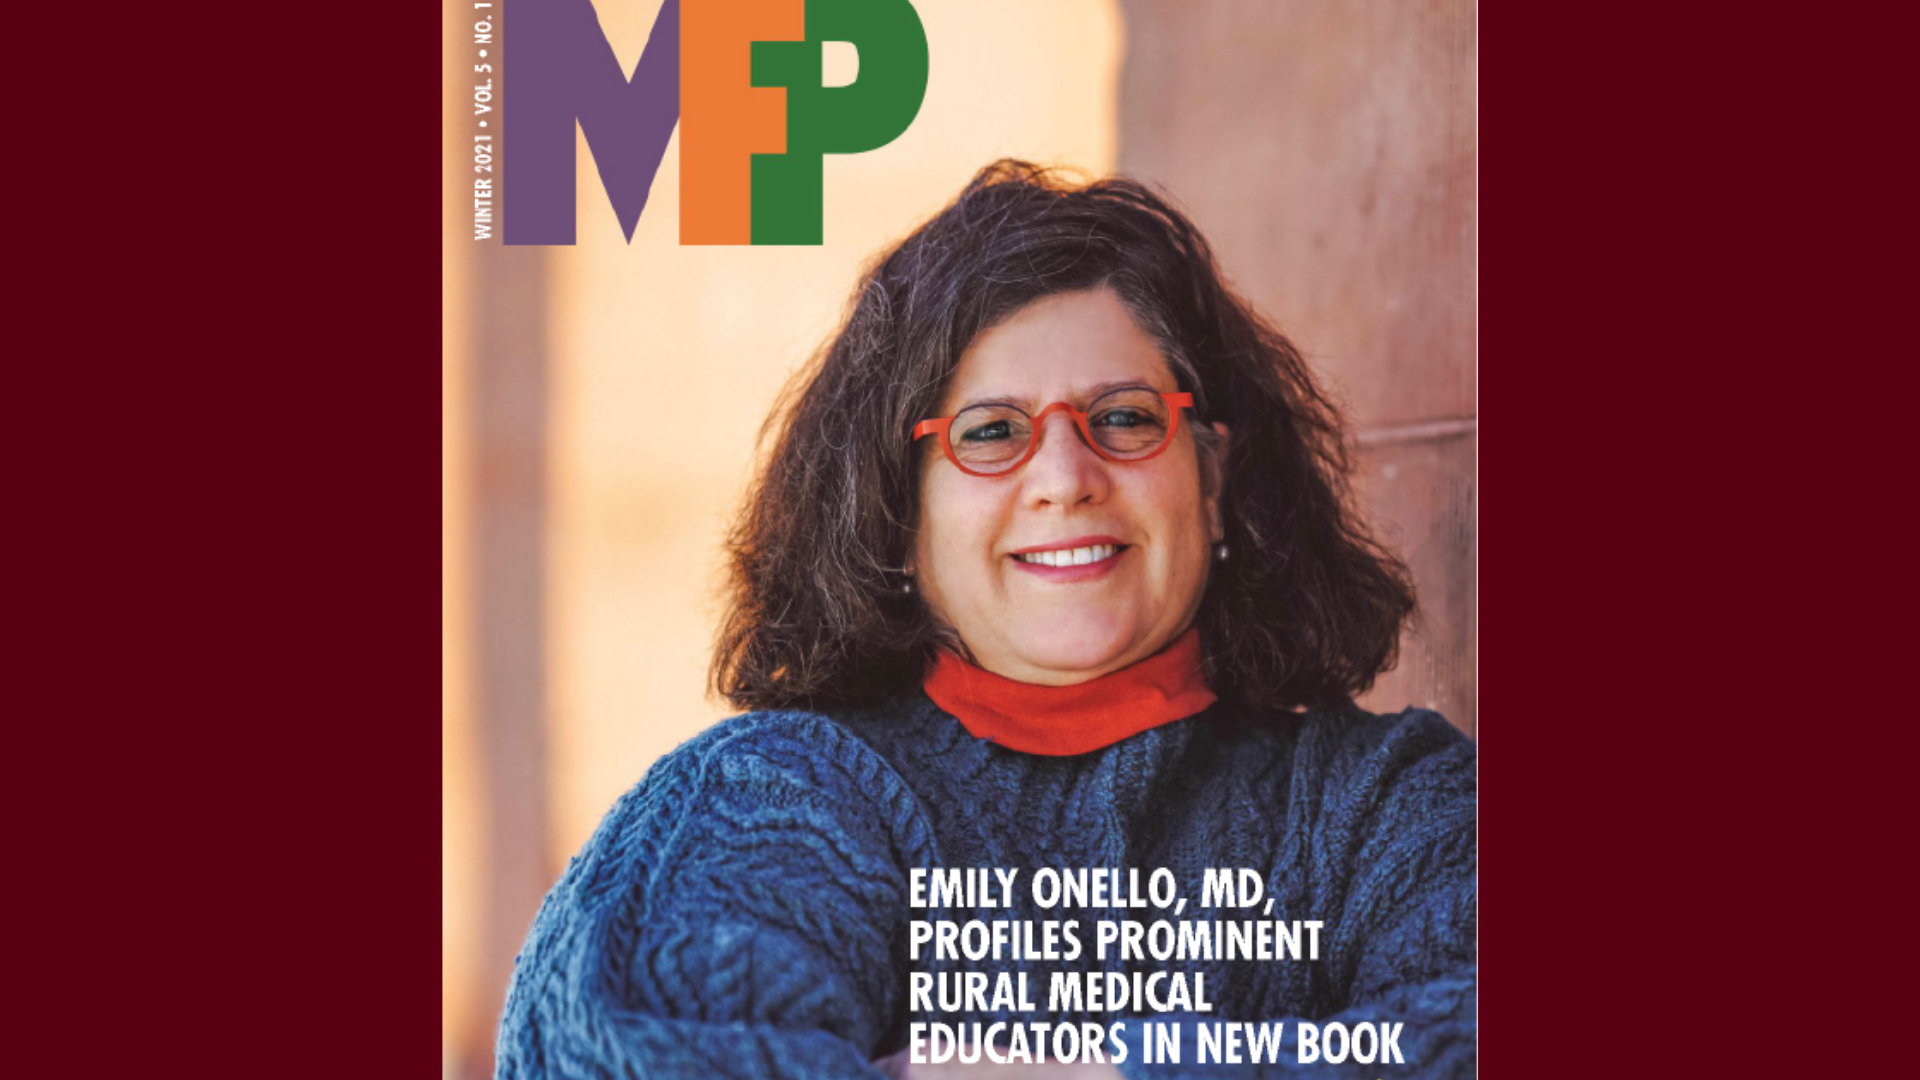 Dr. Emily Onello Profiles Prominent Rural Medical Educators